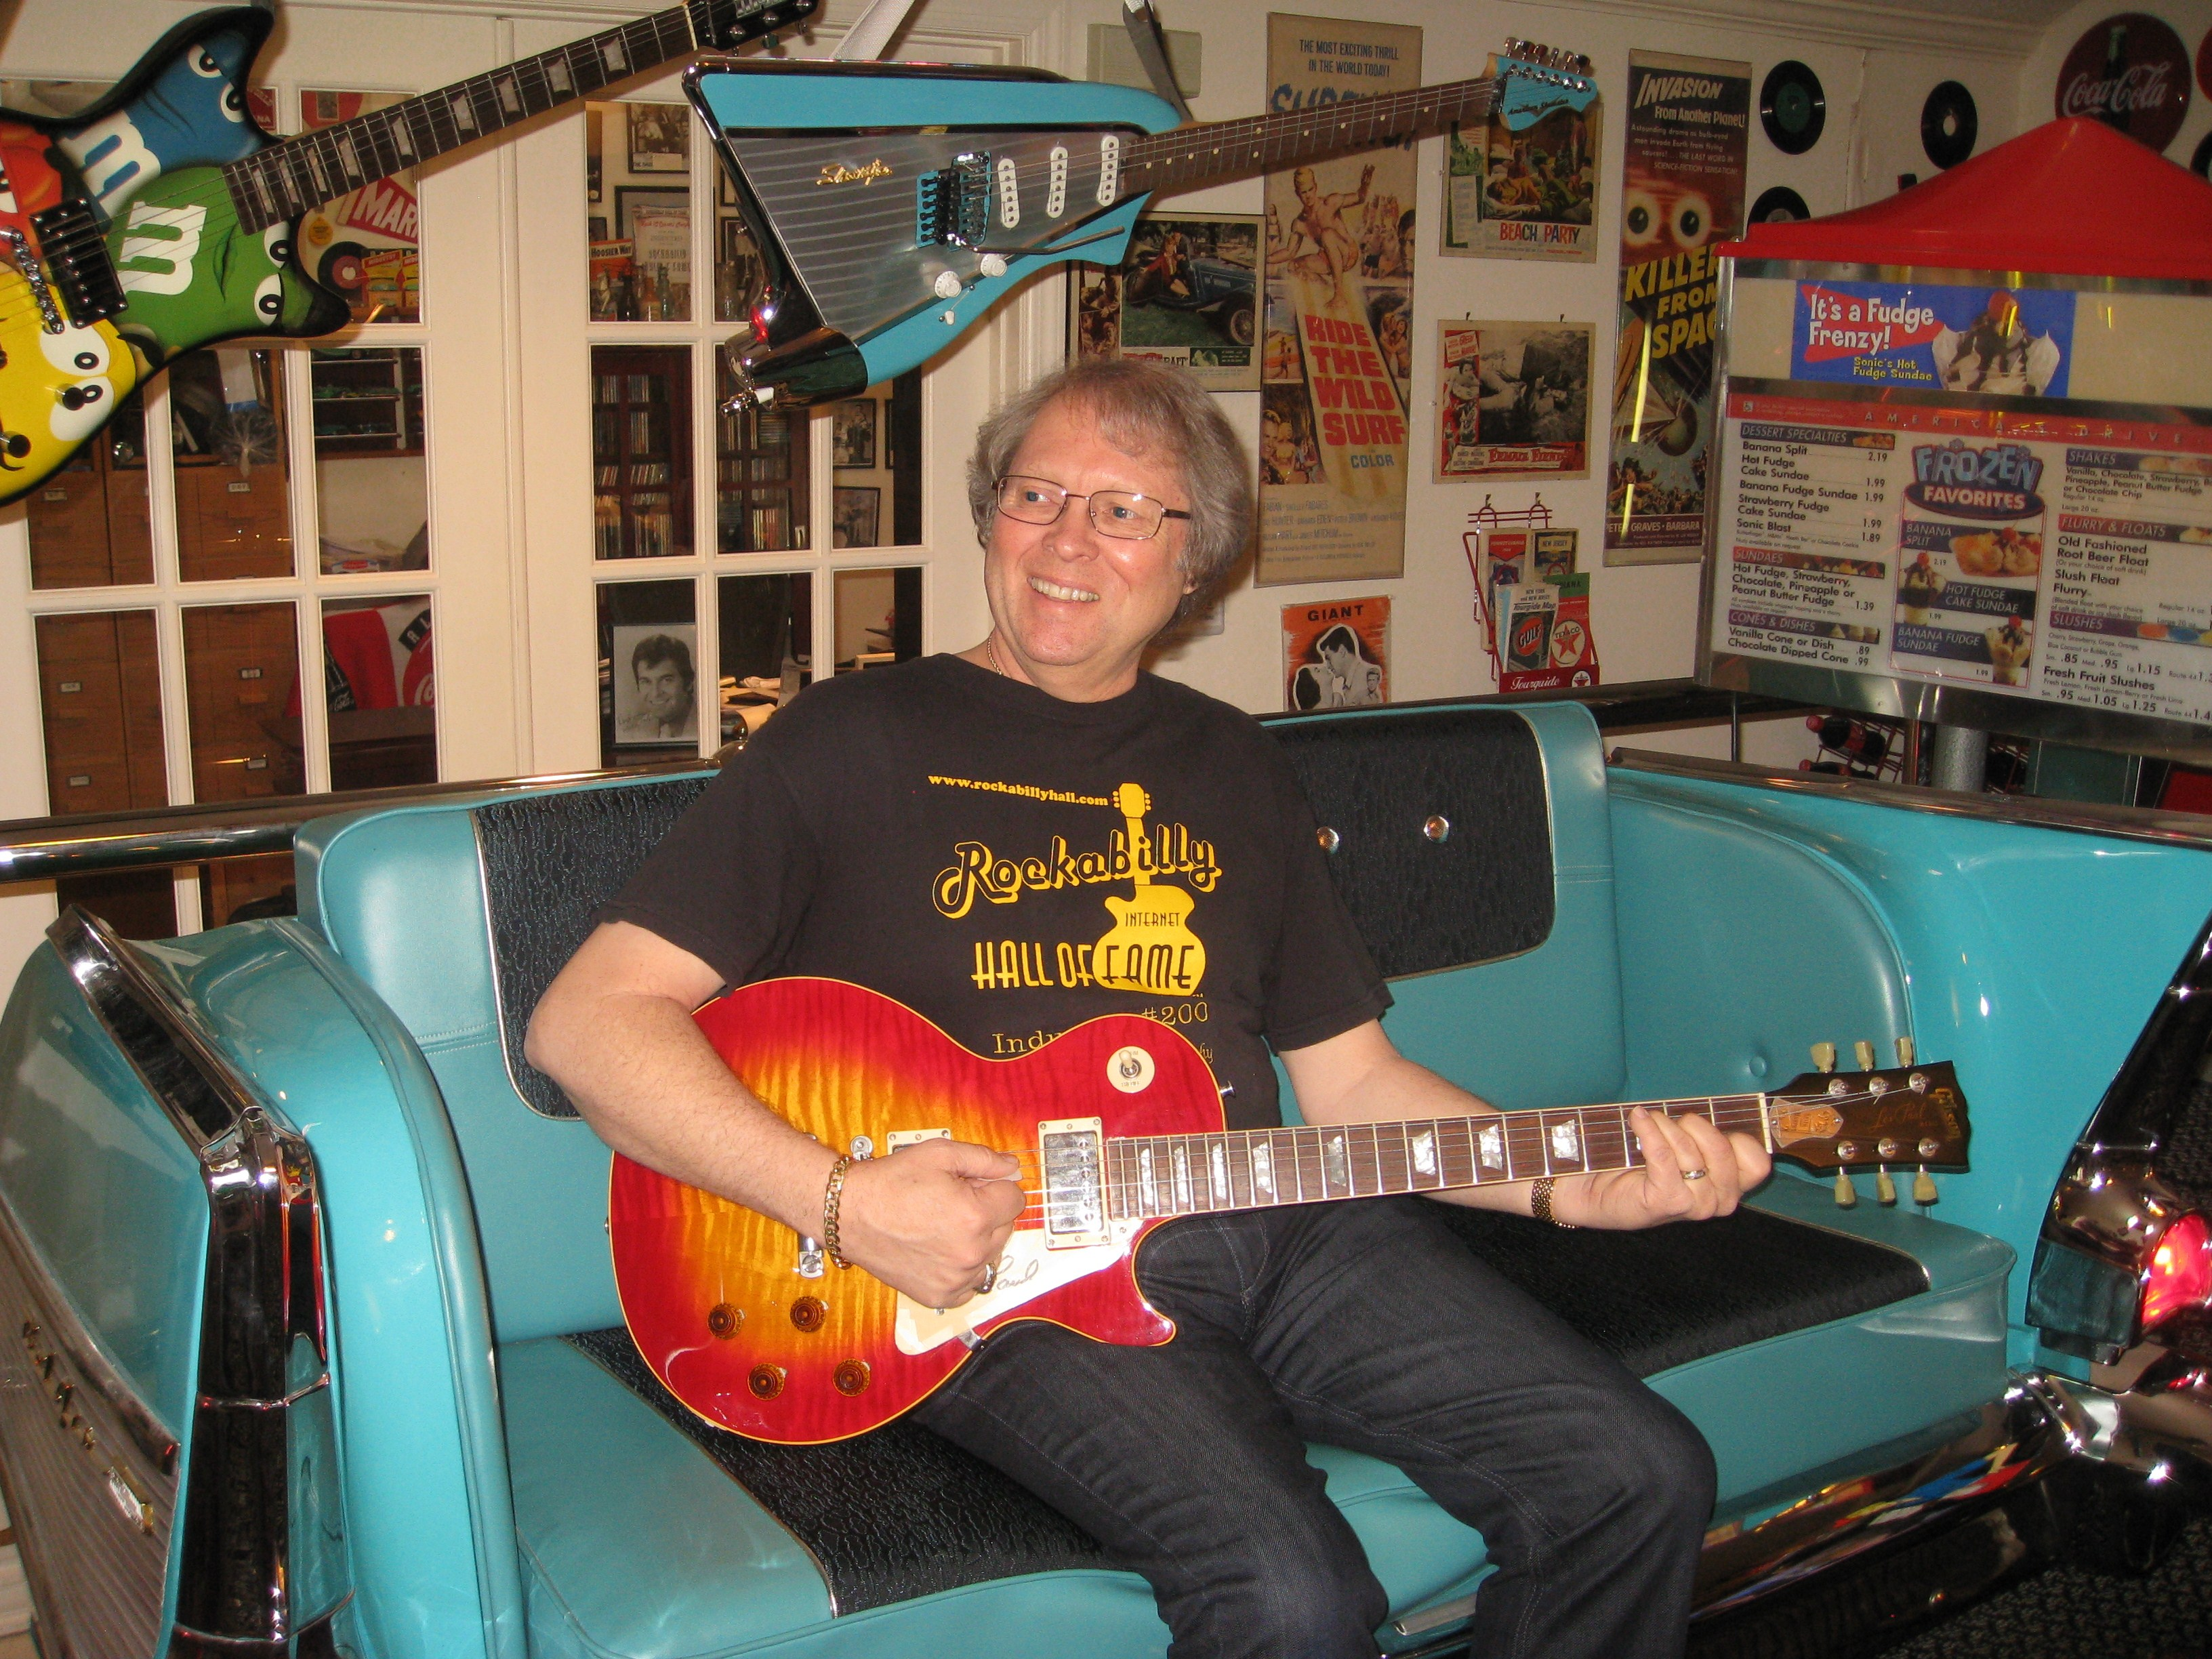 File:Keith on 57 chevy sofa Les Paul guitar 1835 5-1-2013 ...